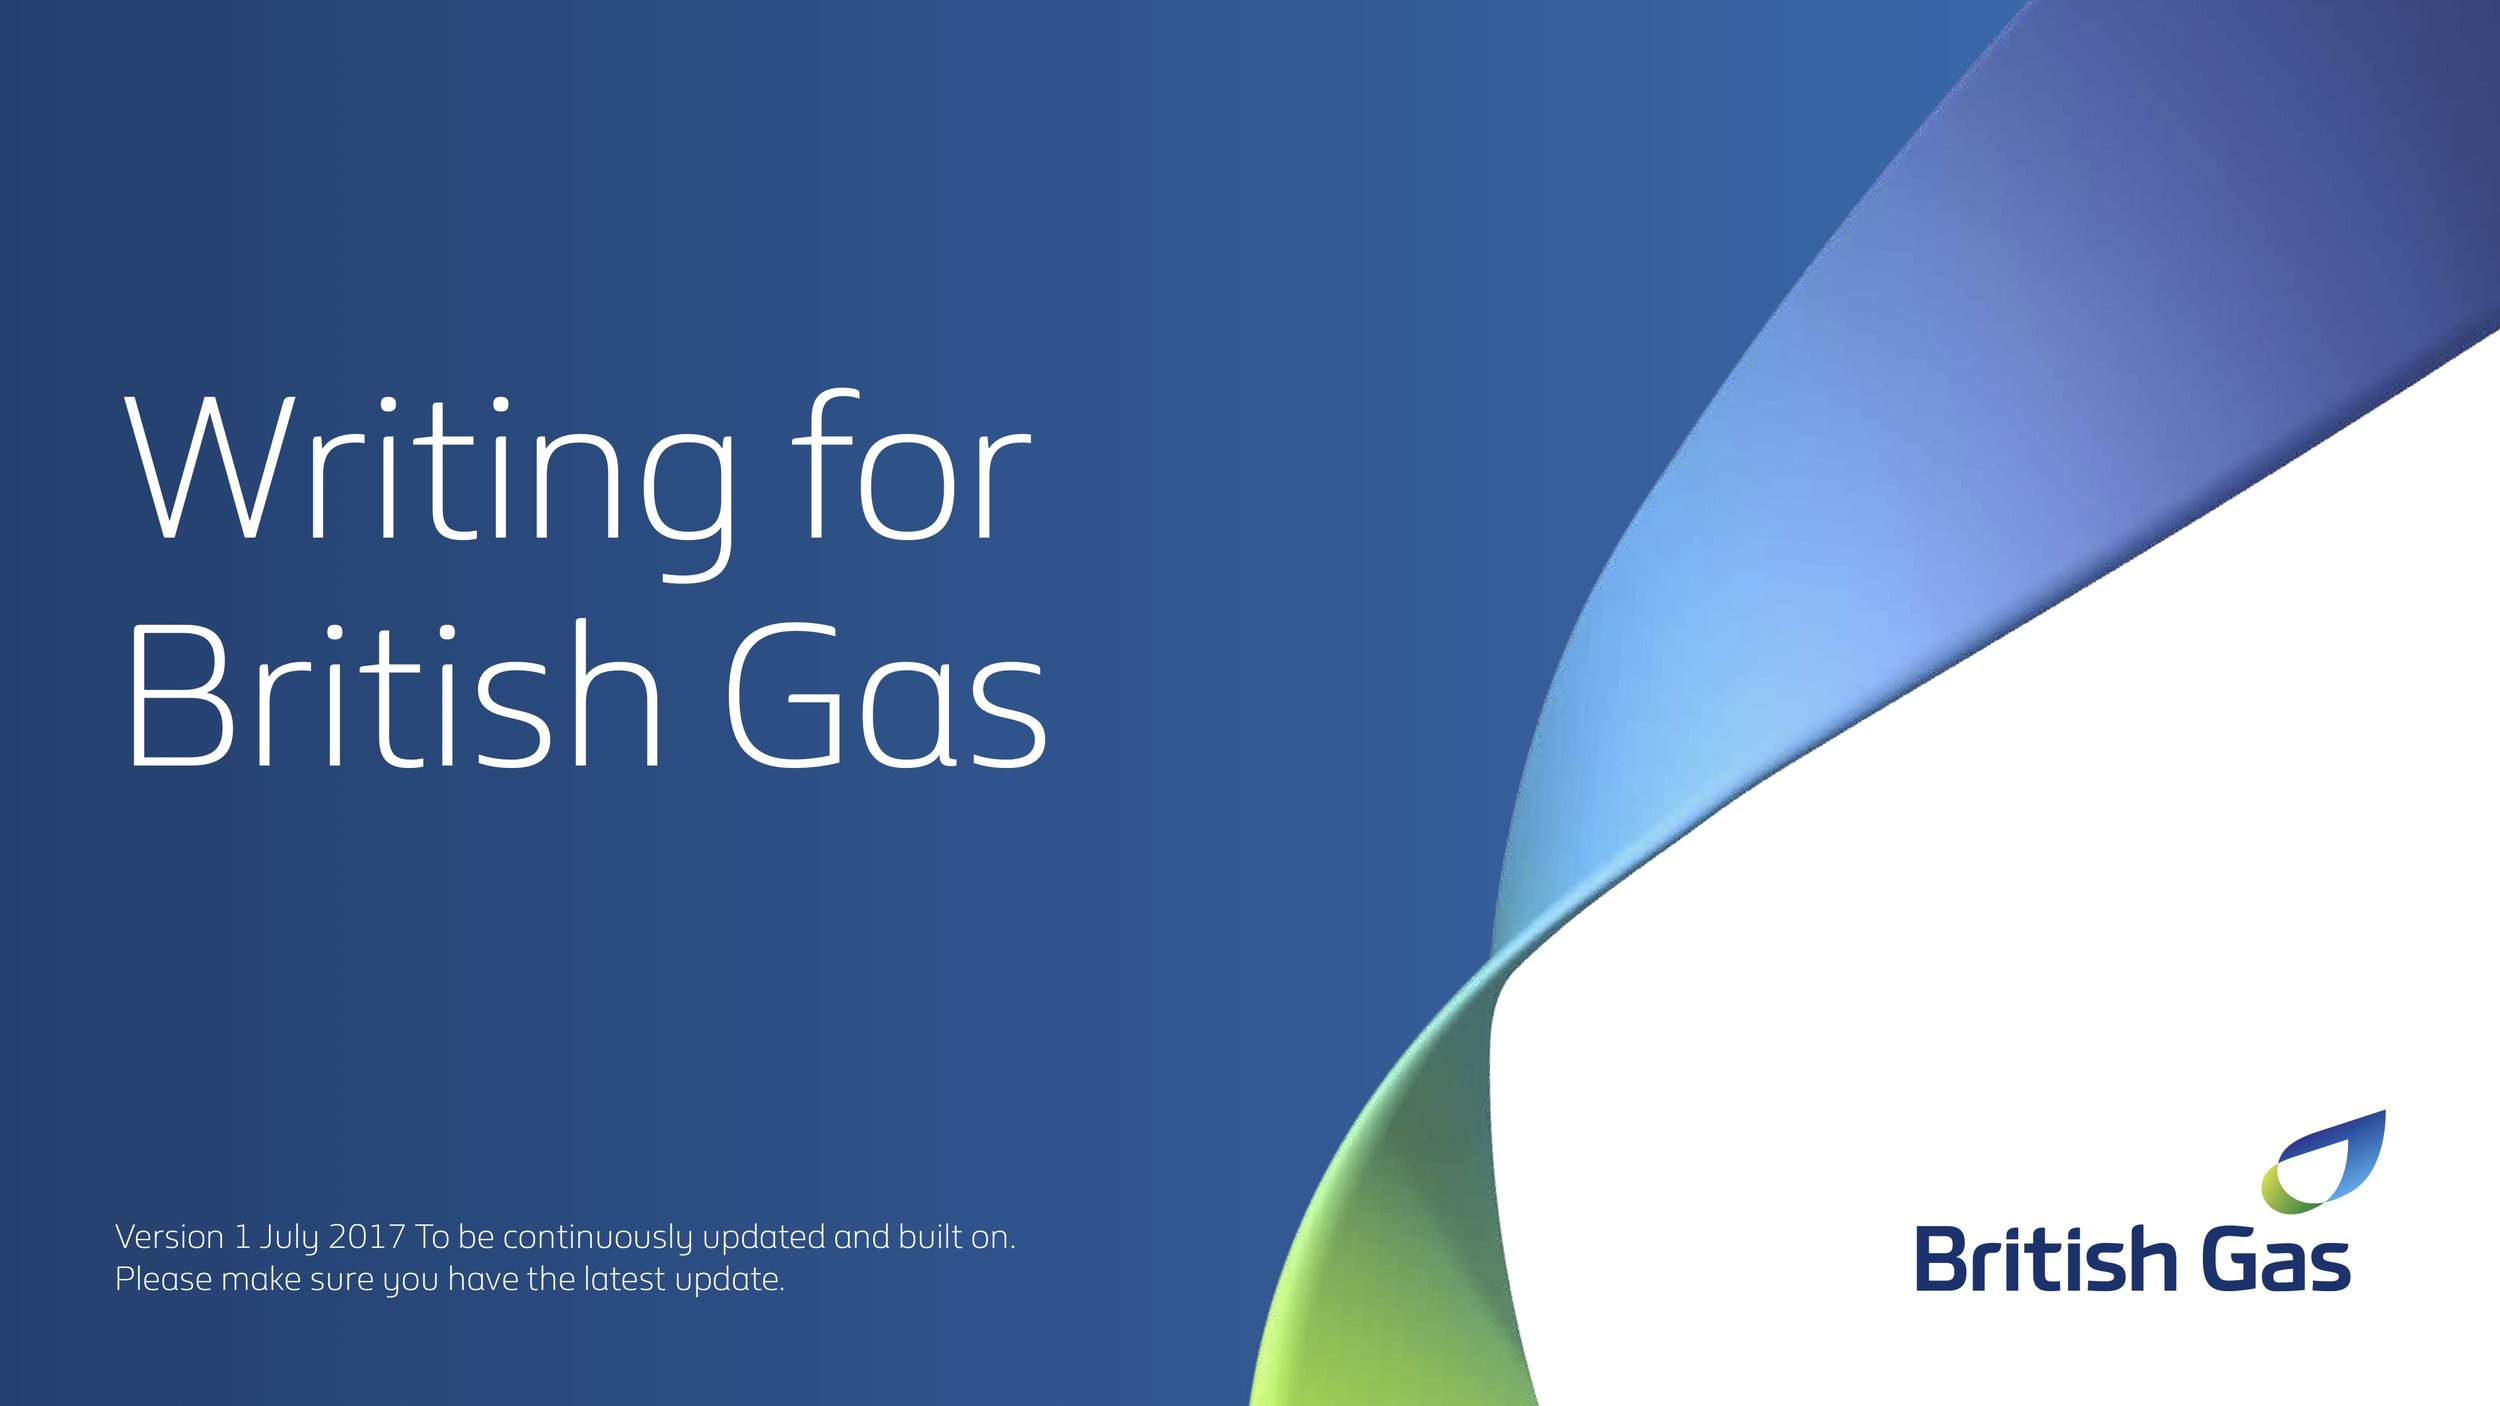 Cover page for British Gas tone of voice guidelines. The rest is confidential. Sorry.